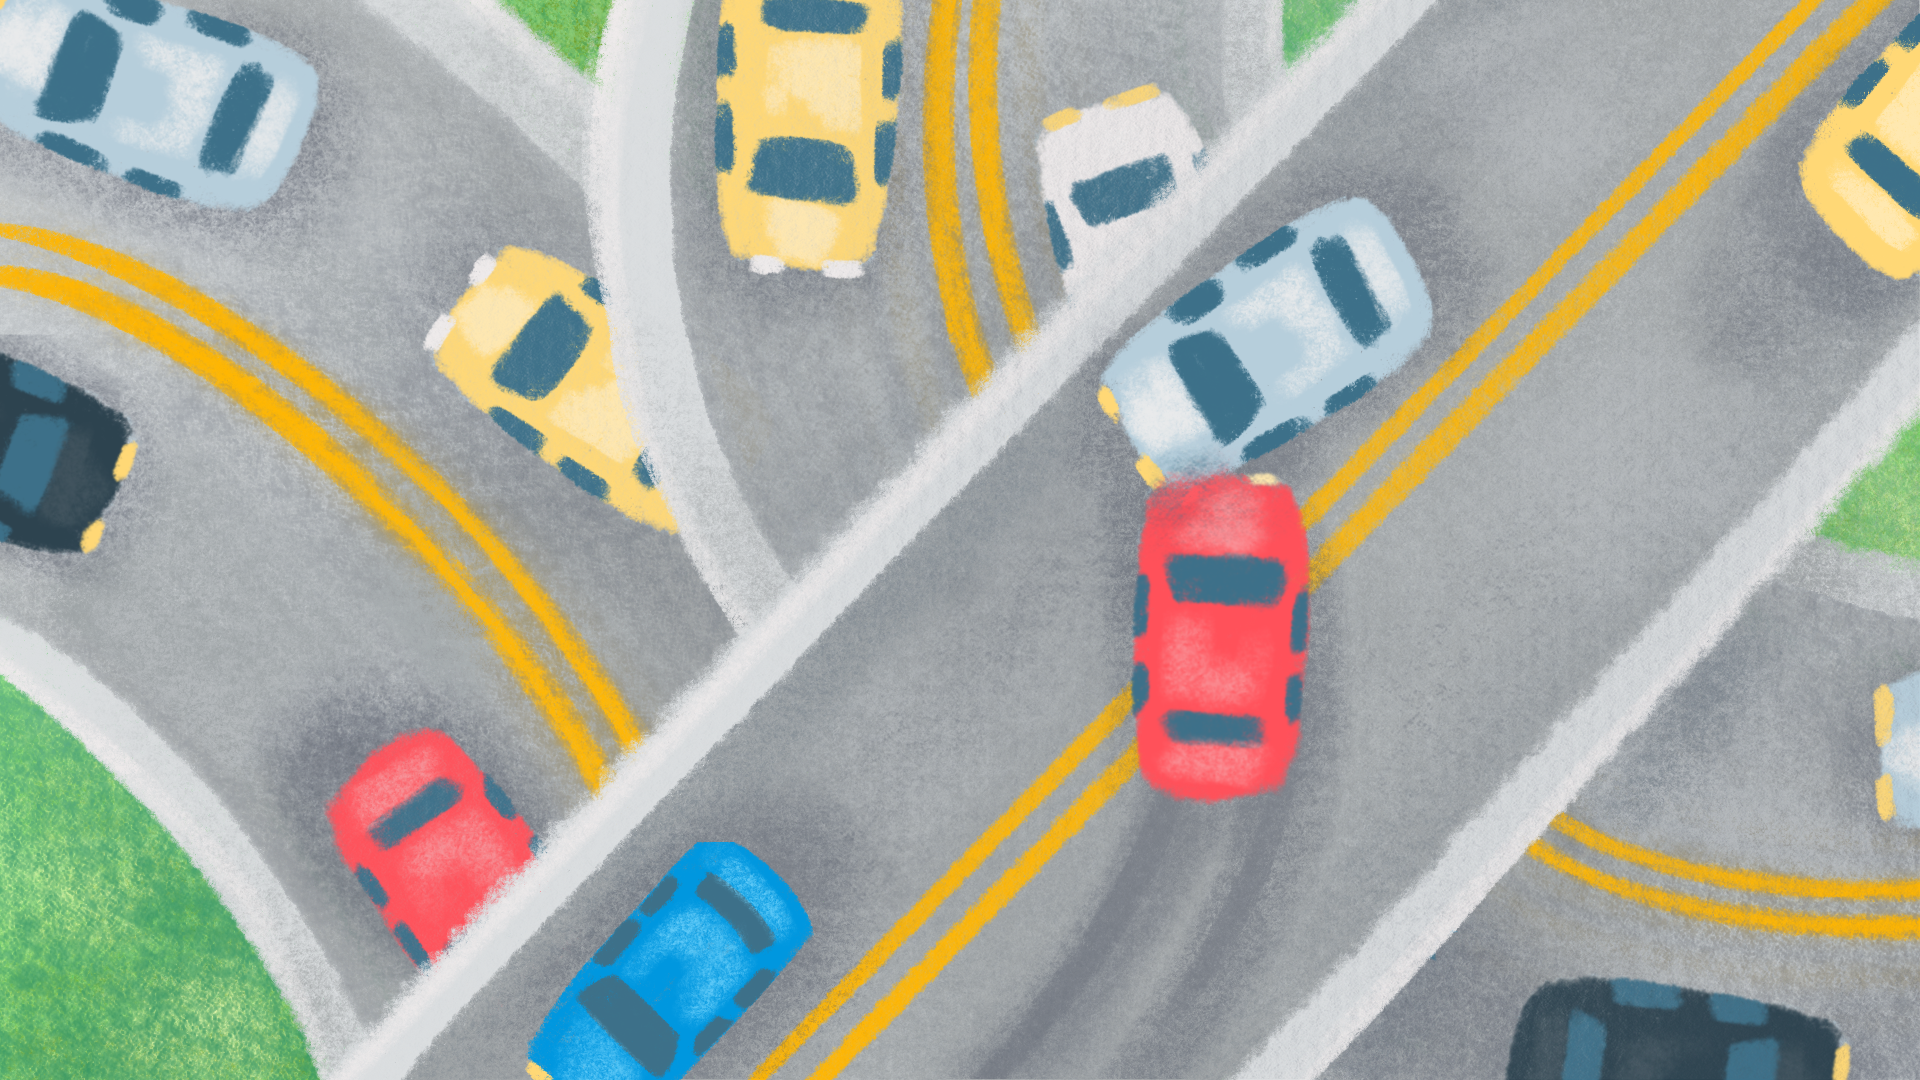 Top down view of cars on multiple busy streets